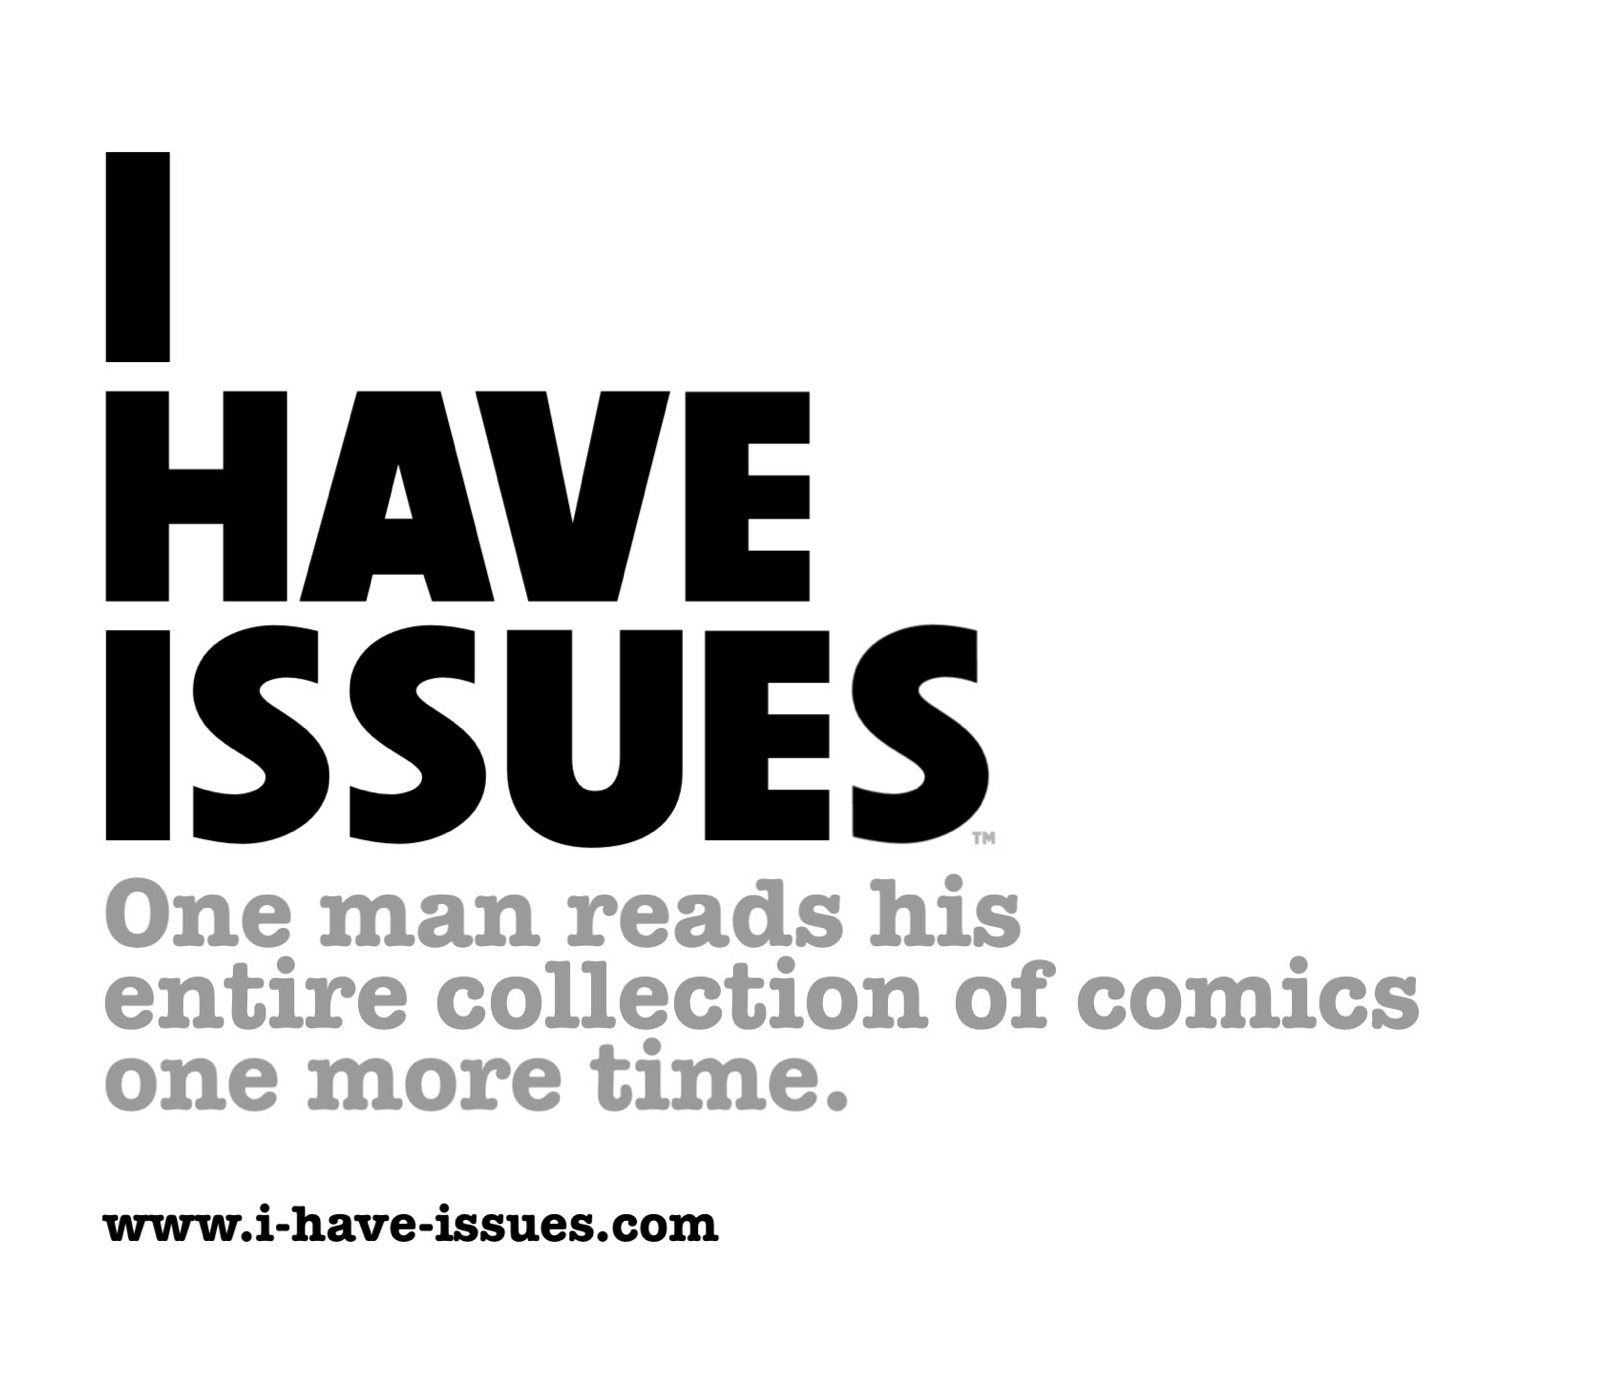 I Have Issues — One man reads his entire collection of comics one more time.